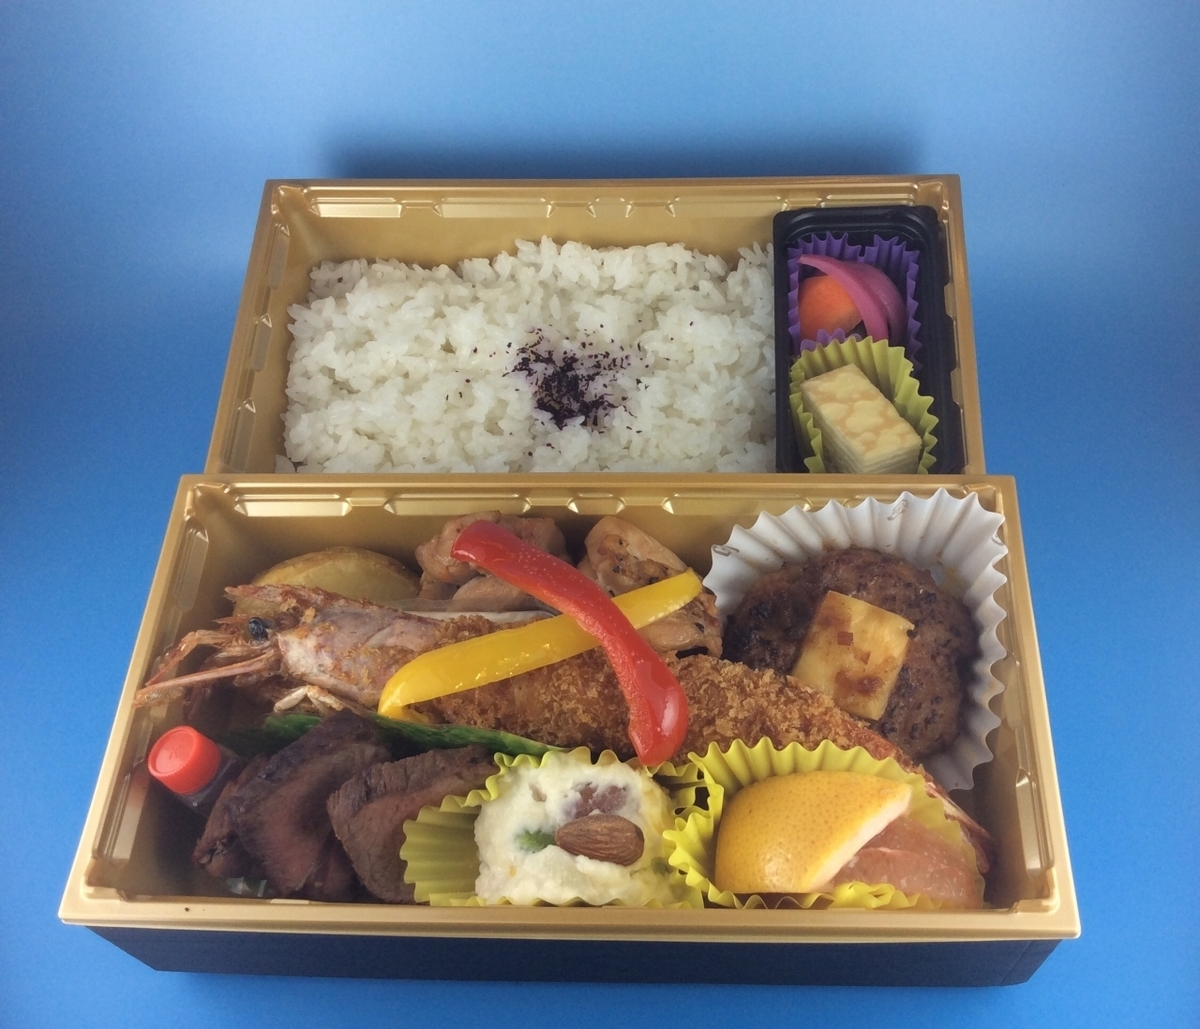 Western-style box lunch